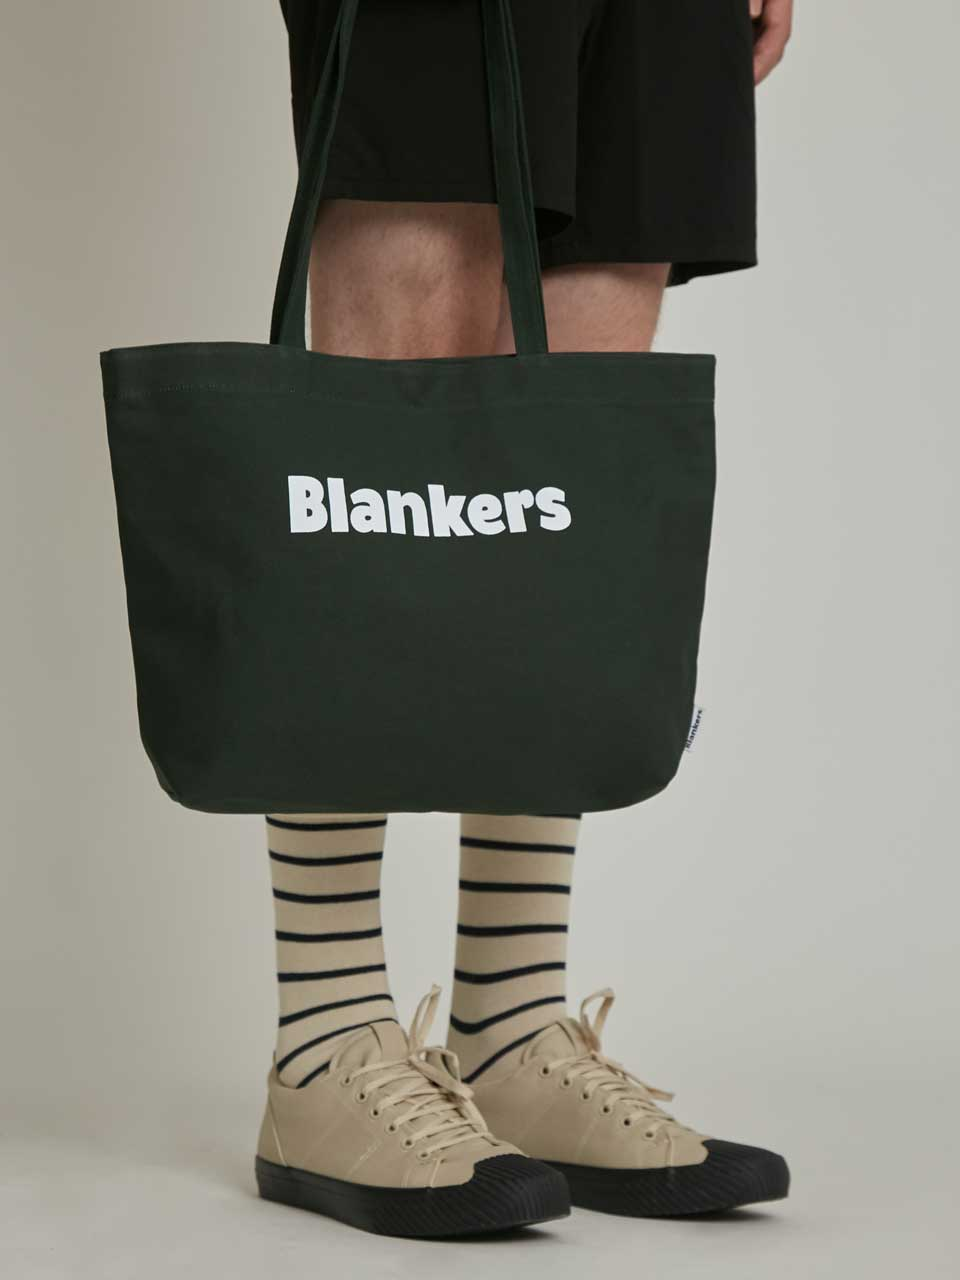 Blankers Basic Canvas Bag (deep green)